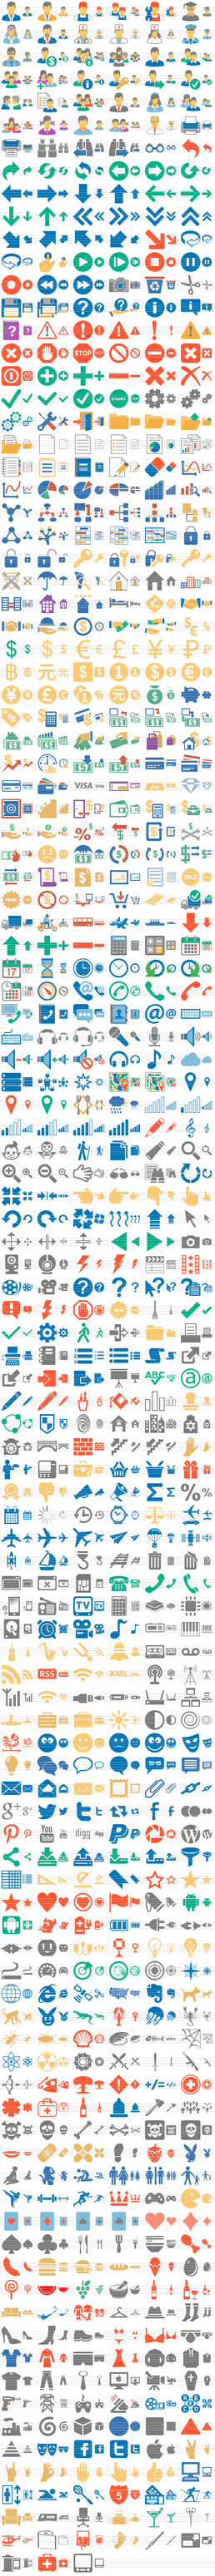 Flat 2013 Toolbar Icons: normal state by toolbaricons2000